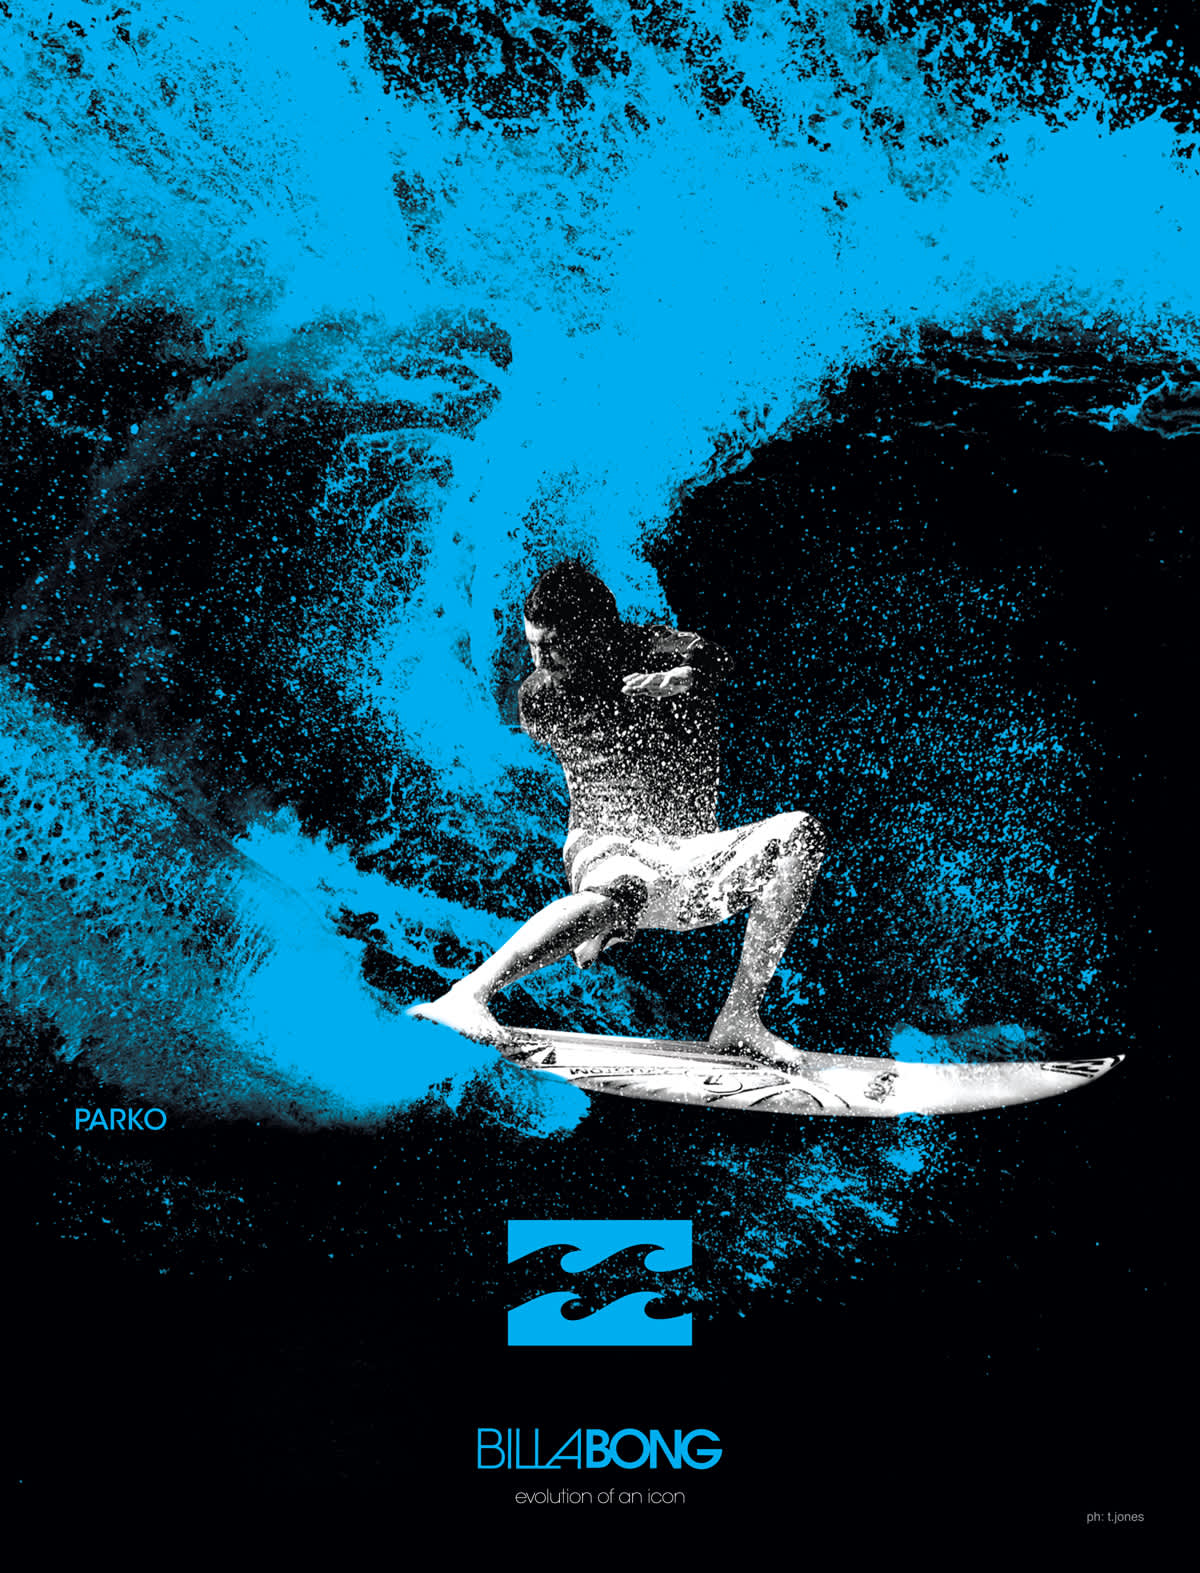 Billabong Evolution of an Icon Campaign